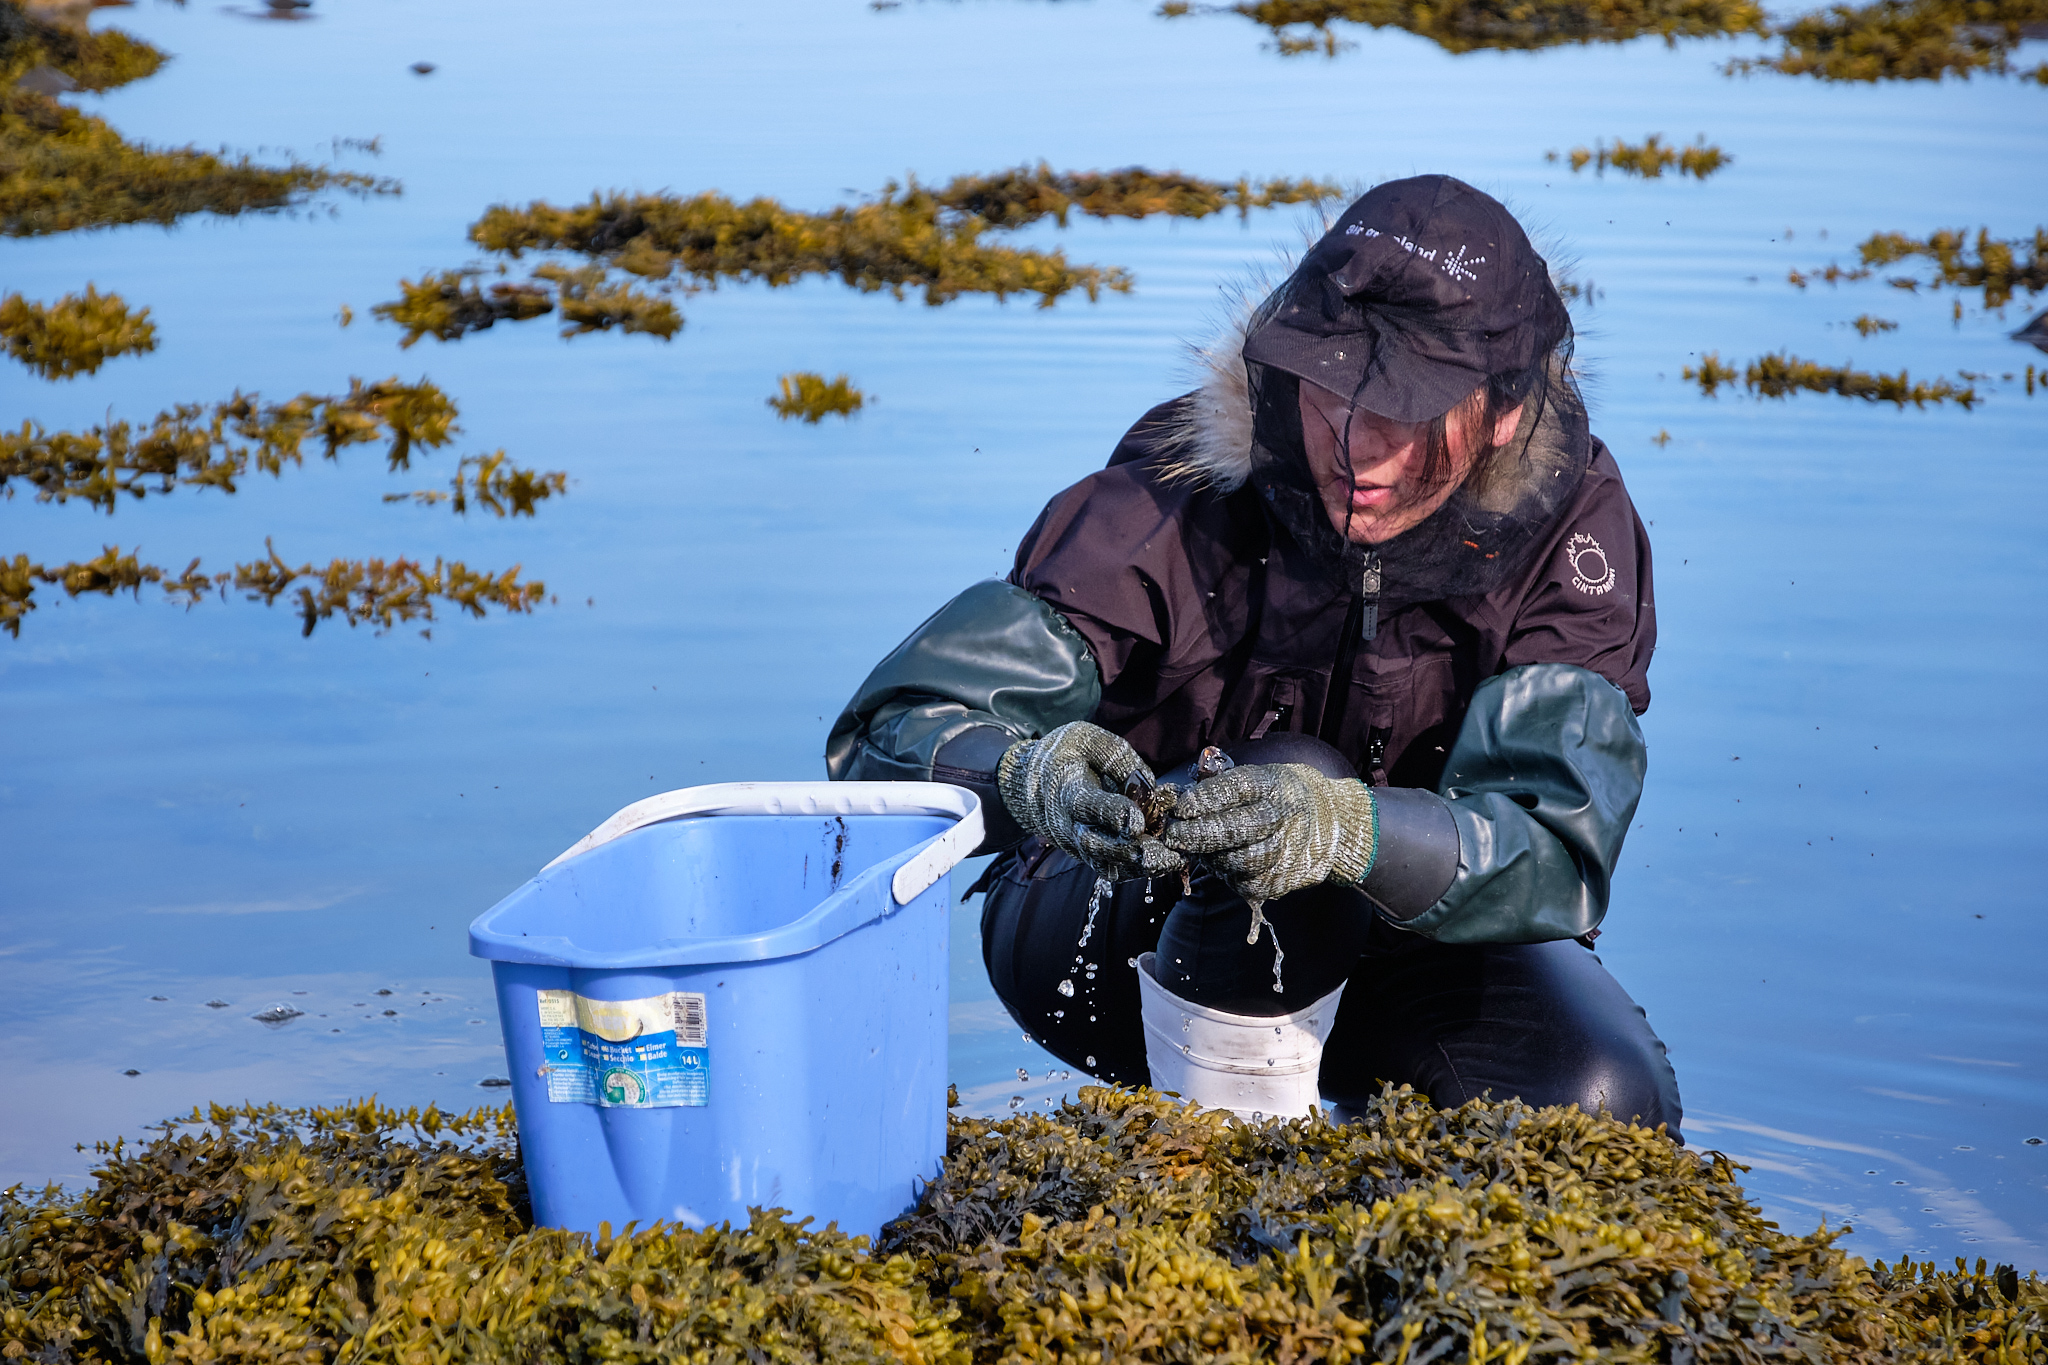 collecting mussels Sassannguit - Sisimiut - Greenland